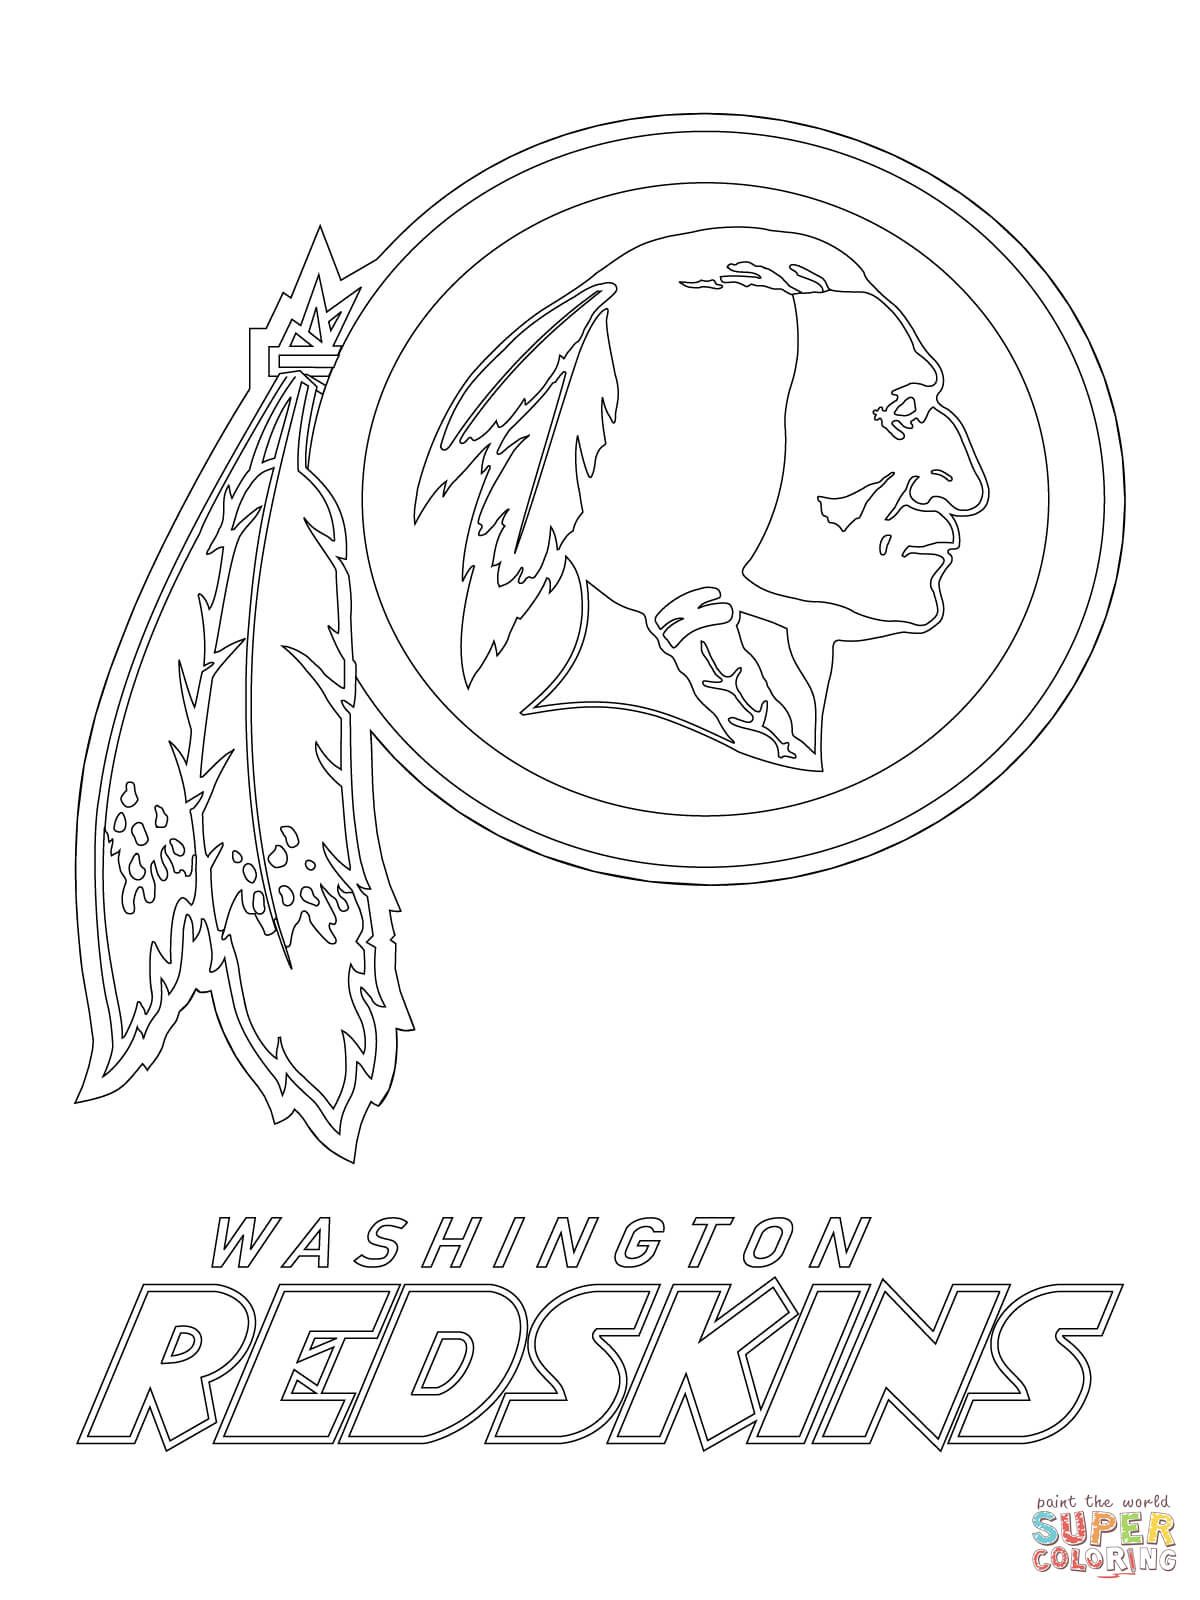 Washington Redskins Logo Super Coloring Redskins Logo